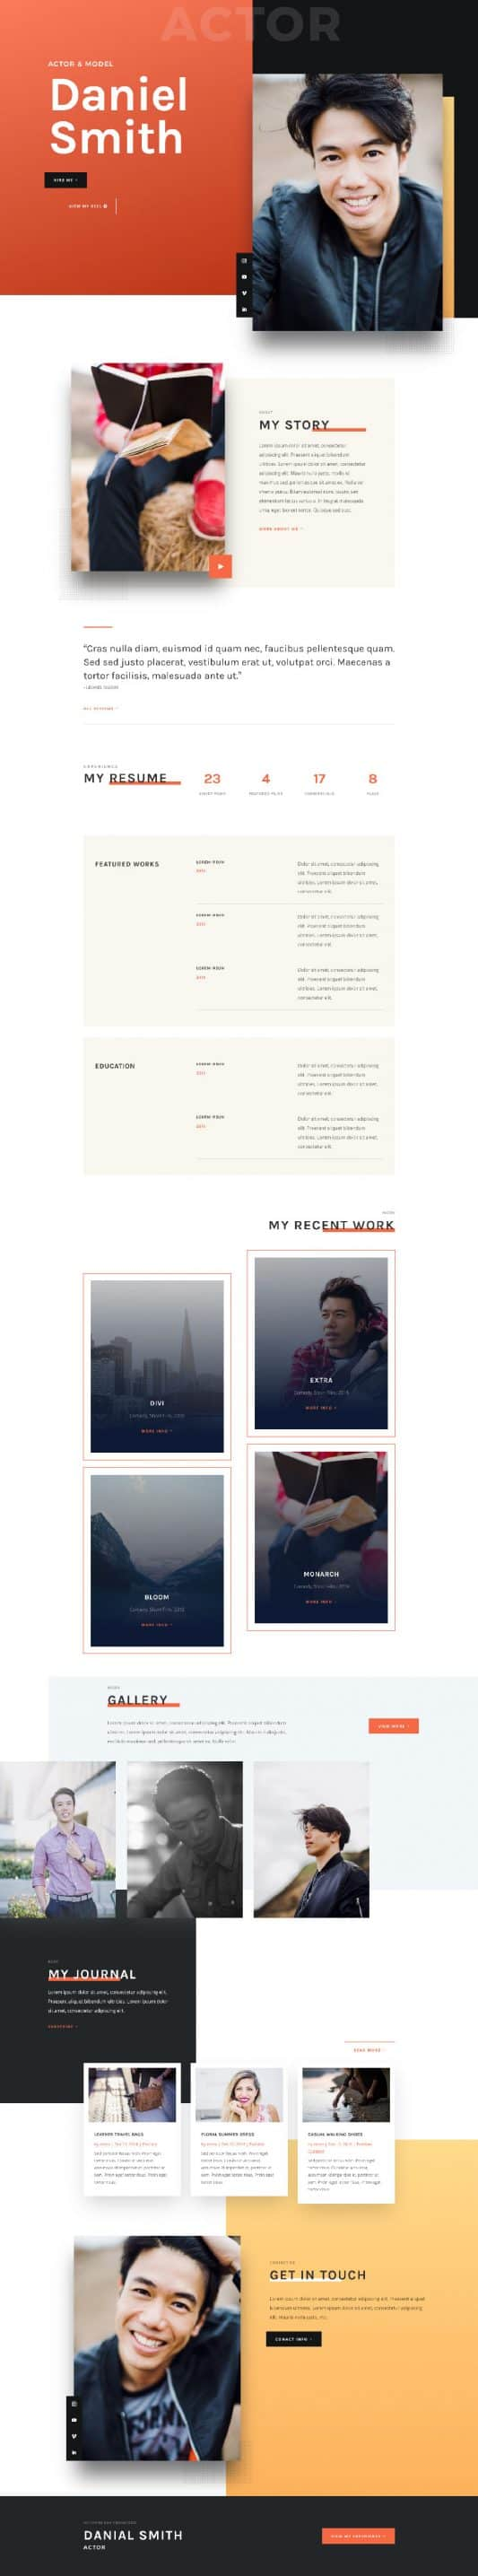 Actor CV Web Design 6